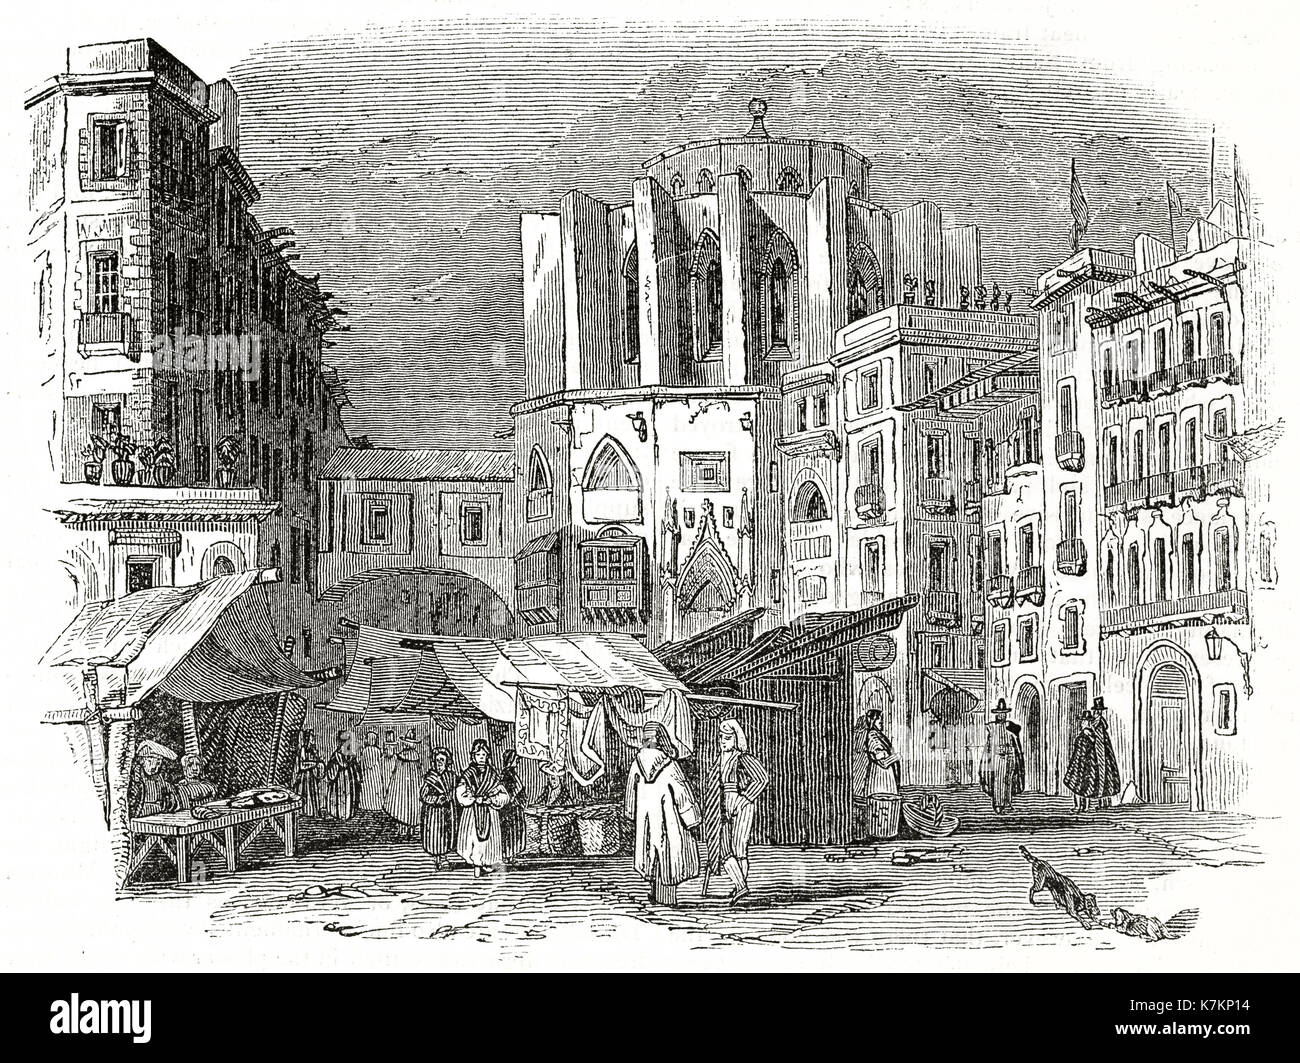 Old view of Santa Maria del Mar church, Barcelona, Spain By unidentified author, publ. on The Penny Magazine, London, 1837 - Stock Image